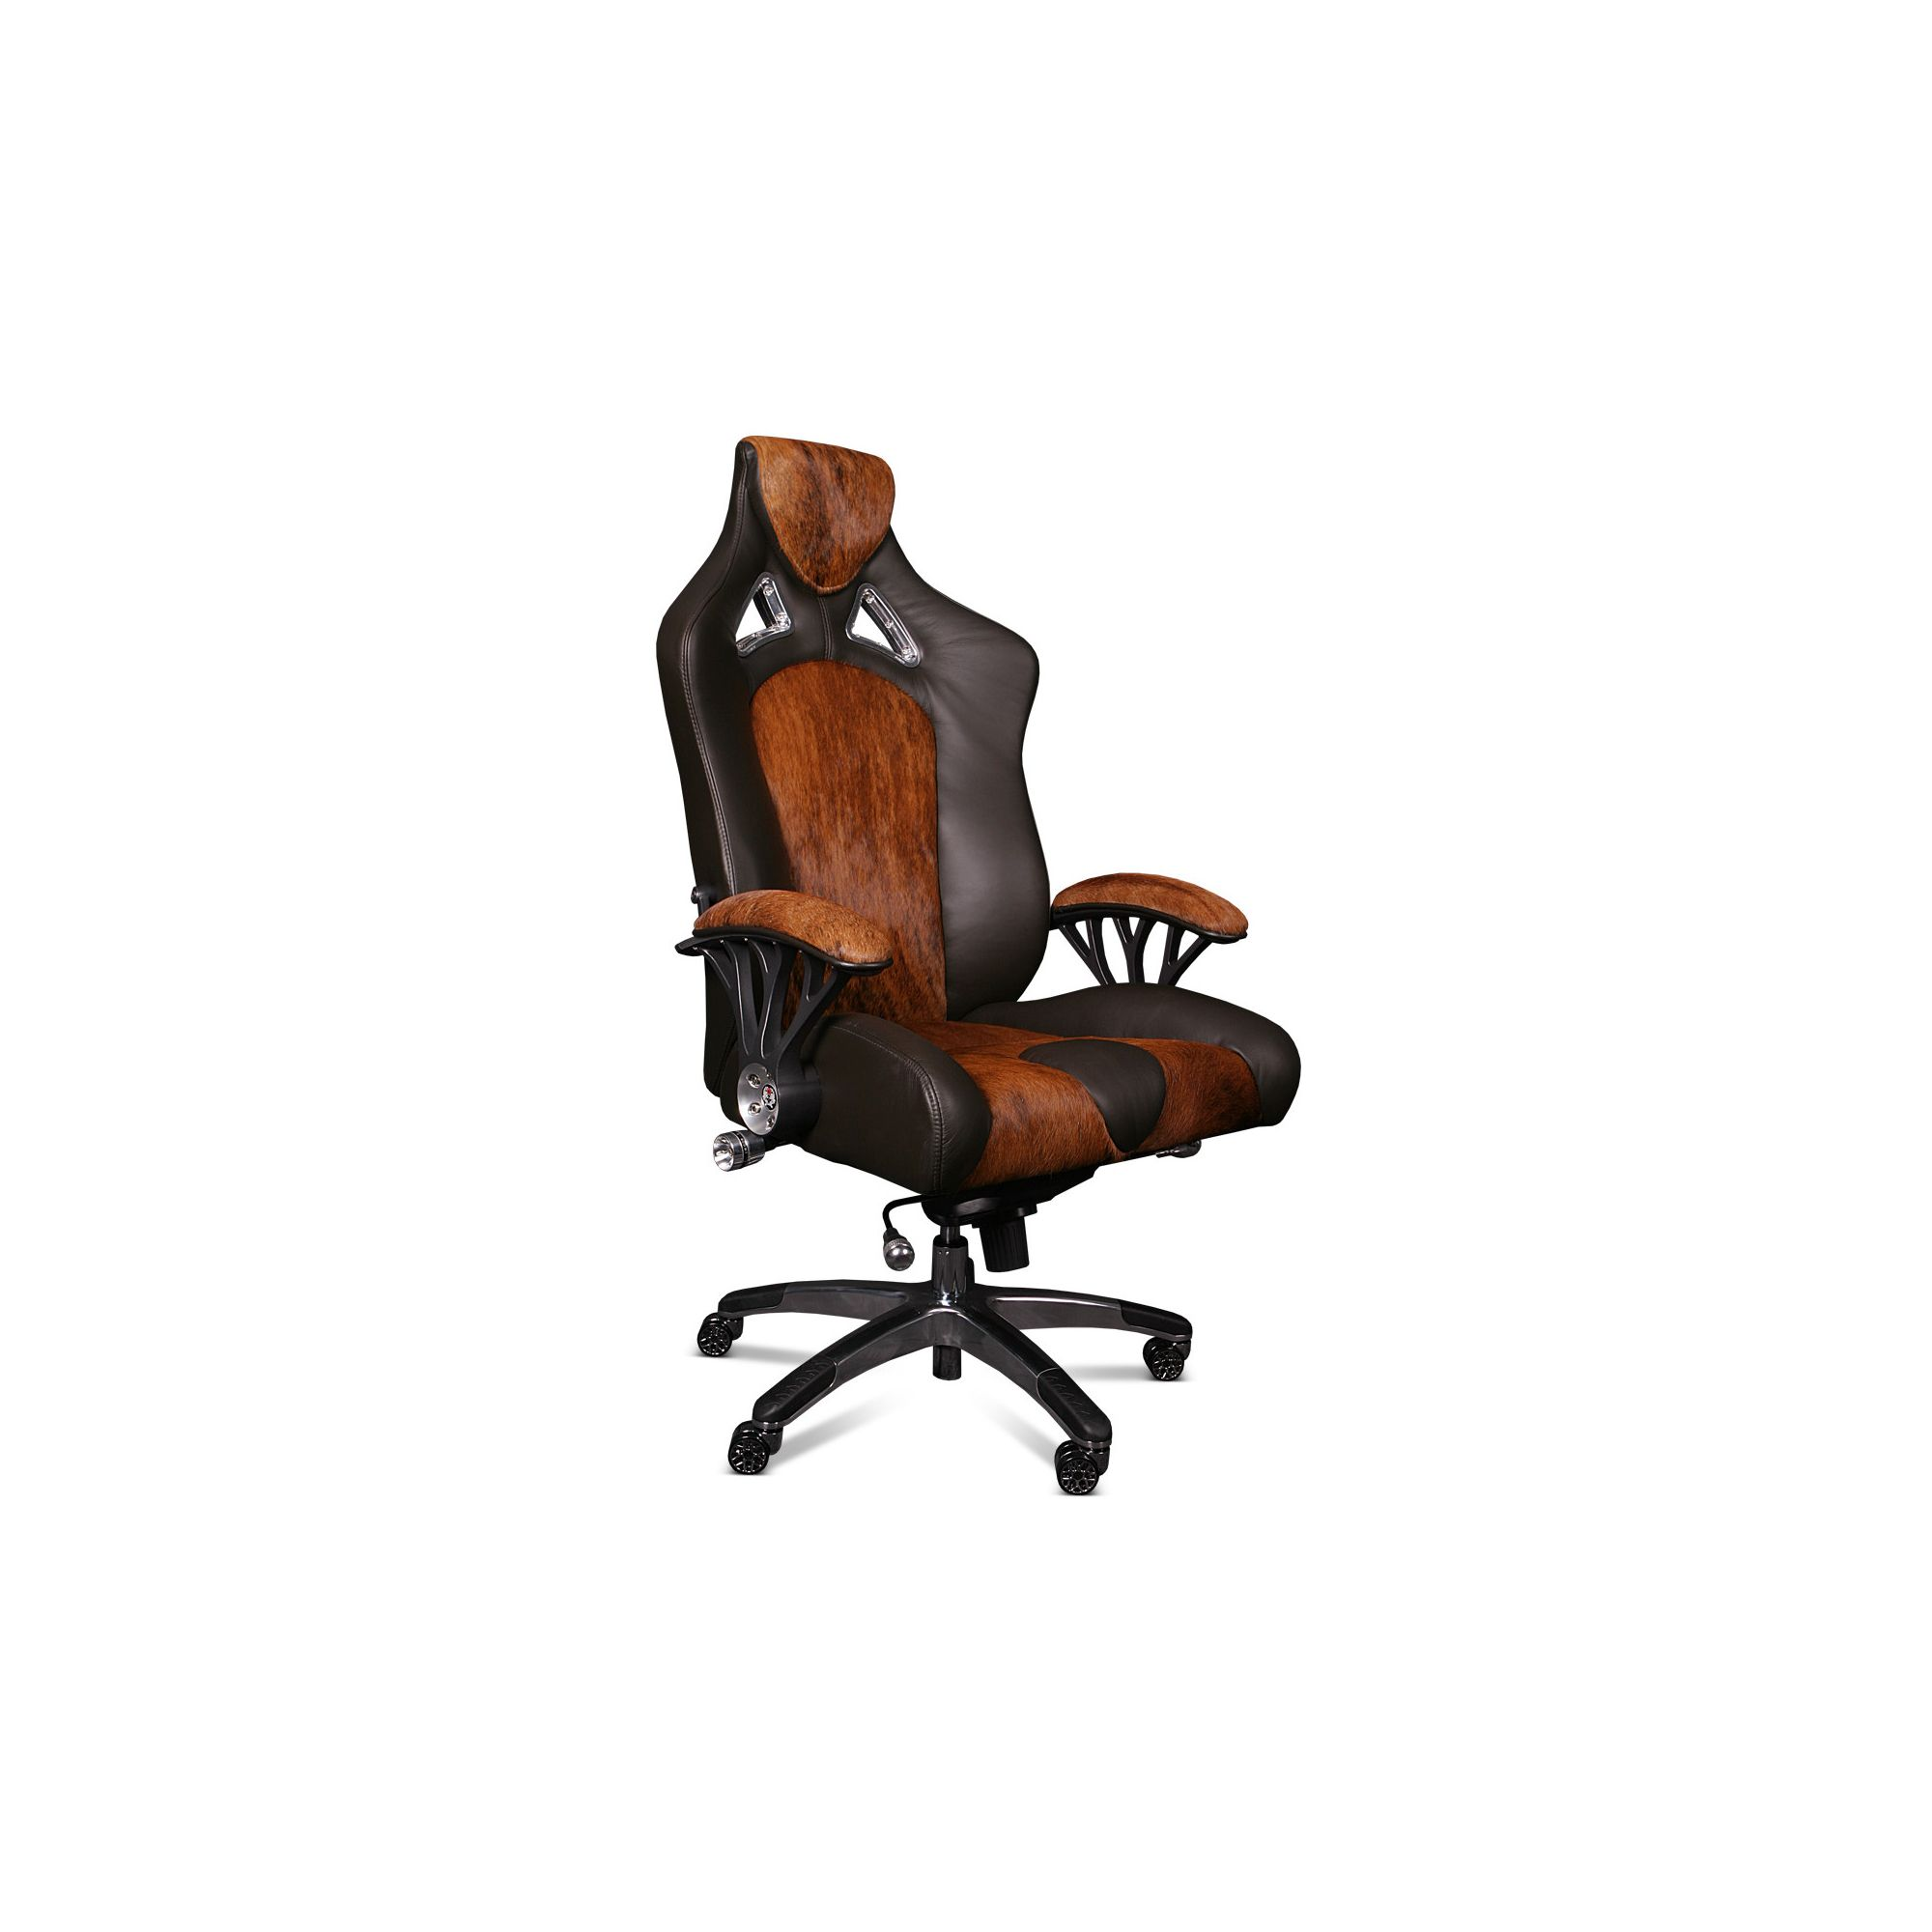 ProMech Racing Speed998 Upholstered  Office Racing Chair - Brown Leather/Cowhide at Tesco Direct